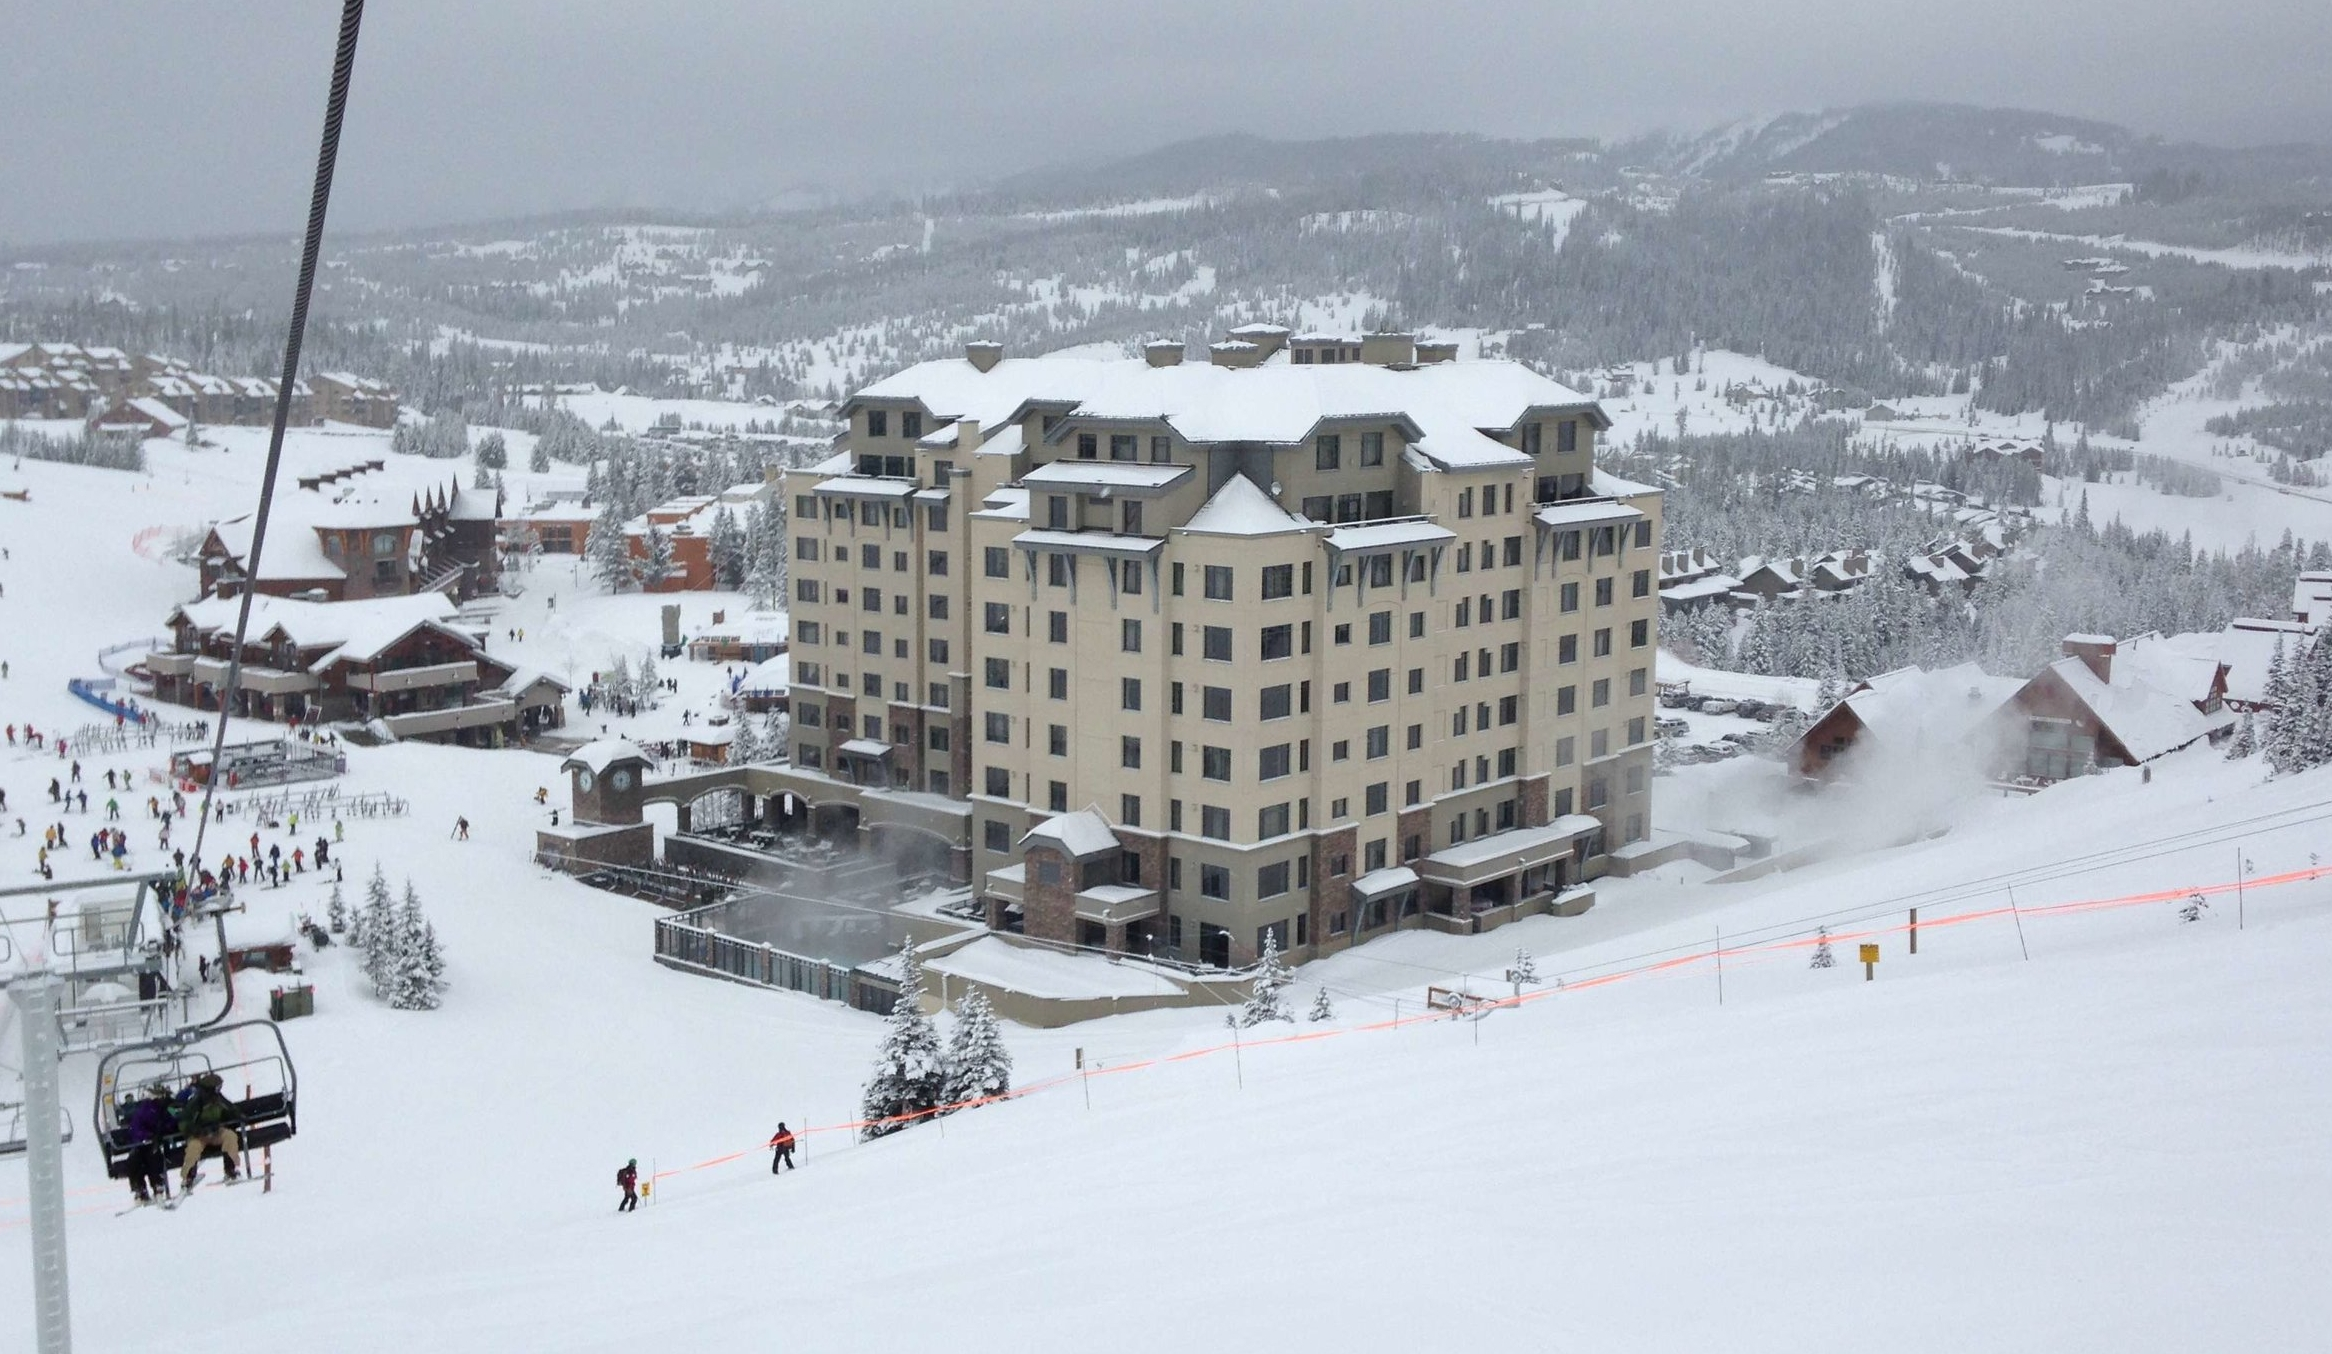 View of Mountain Village and the Summit Hotel from Ski Lift